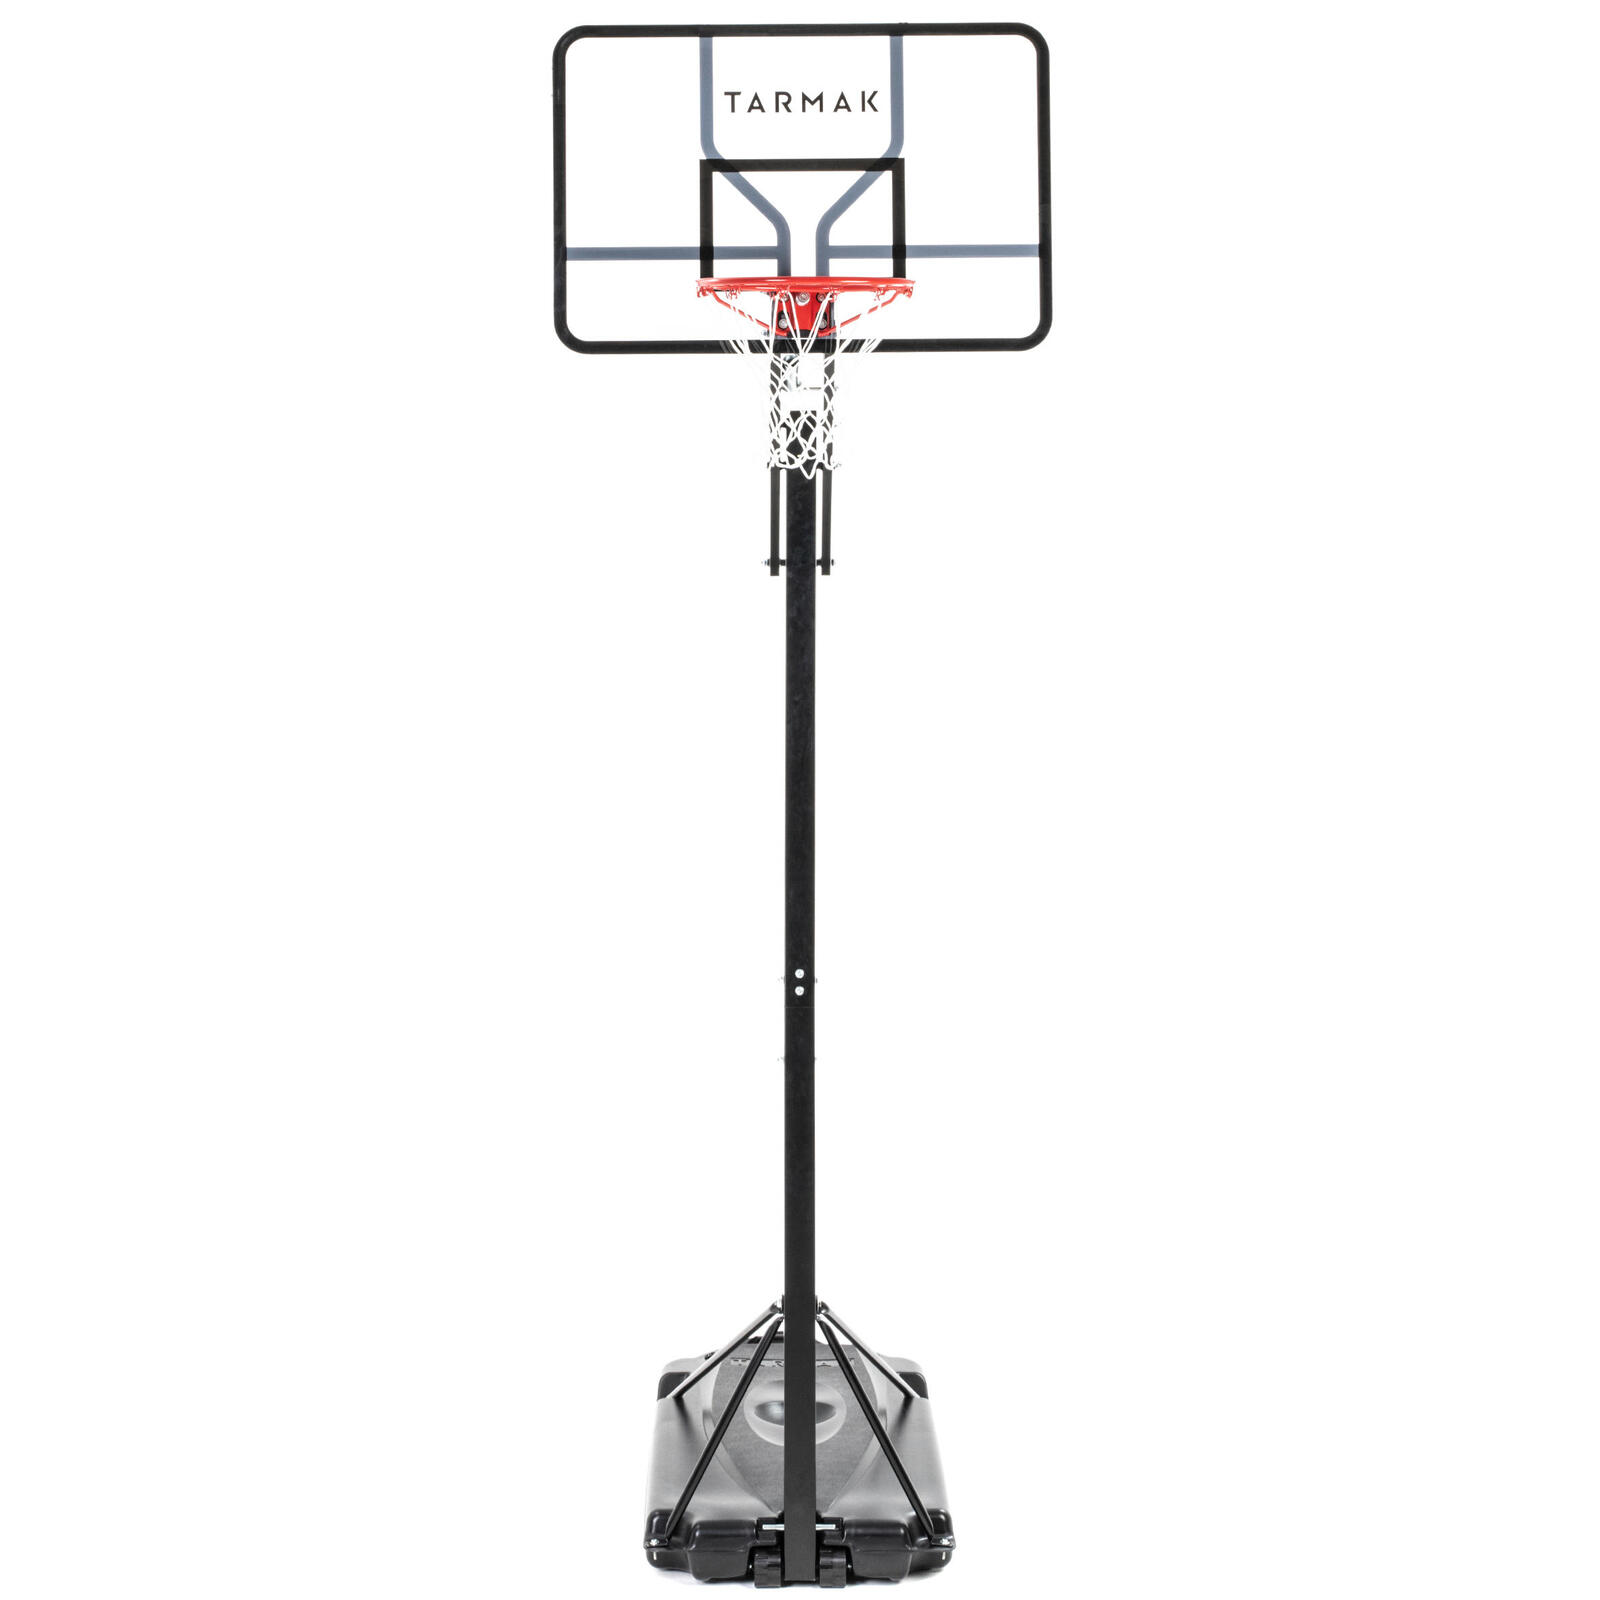 Pro basketball hoop stand black adjusts from 2.2m to 3.05m